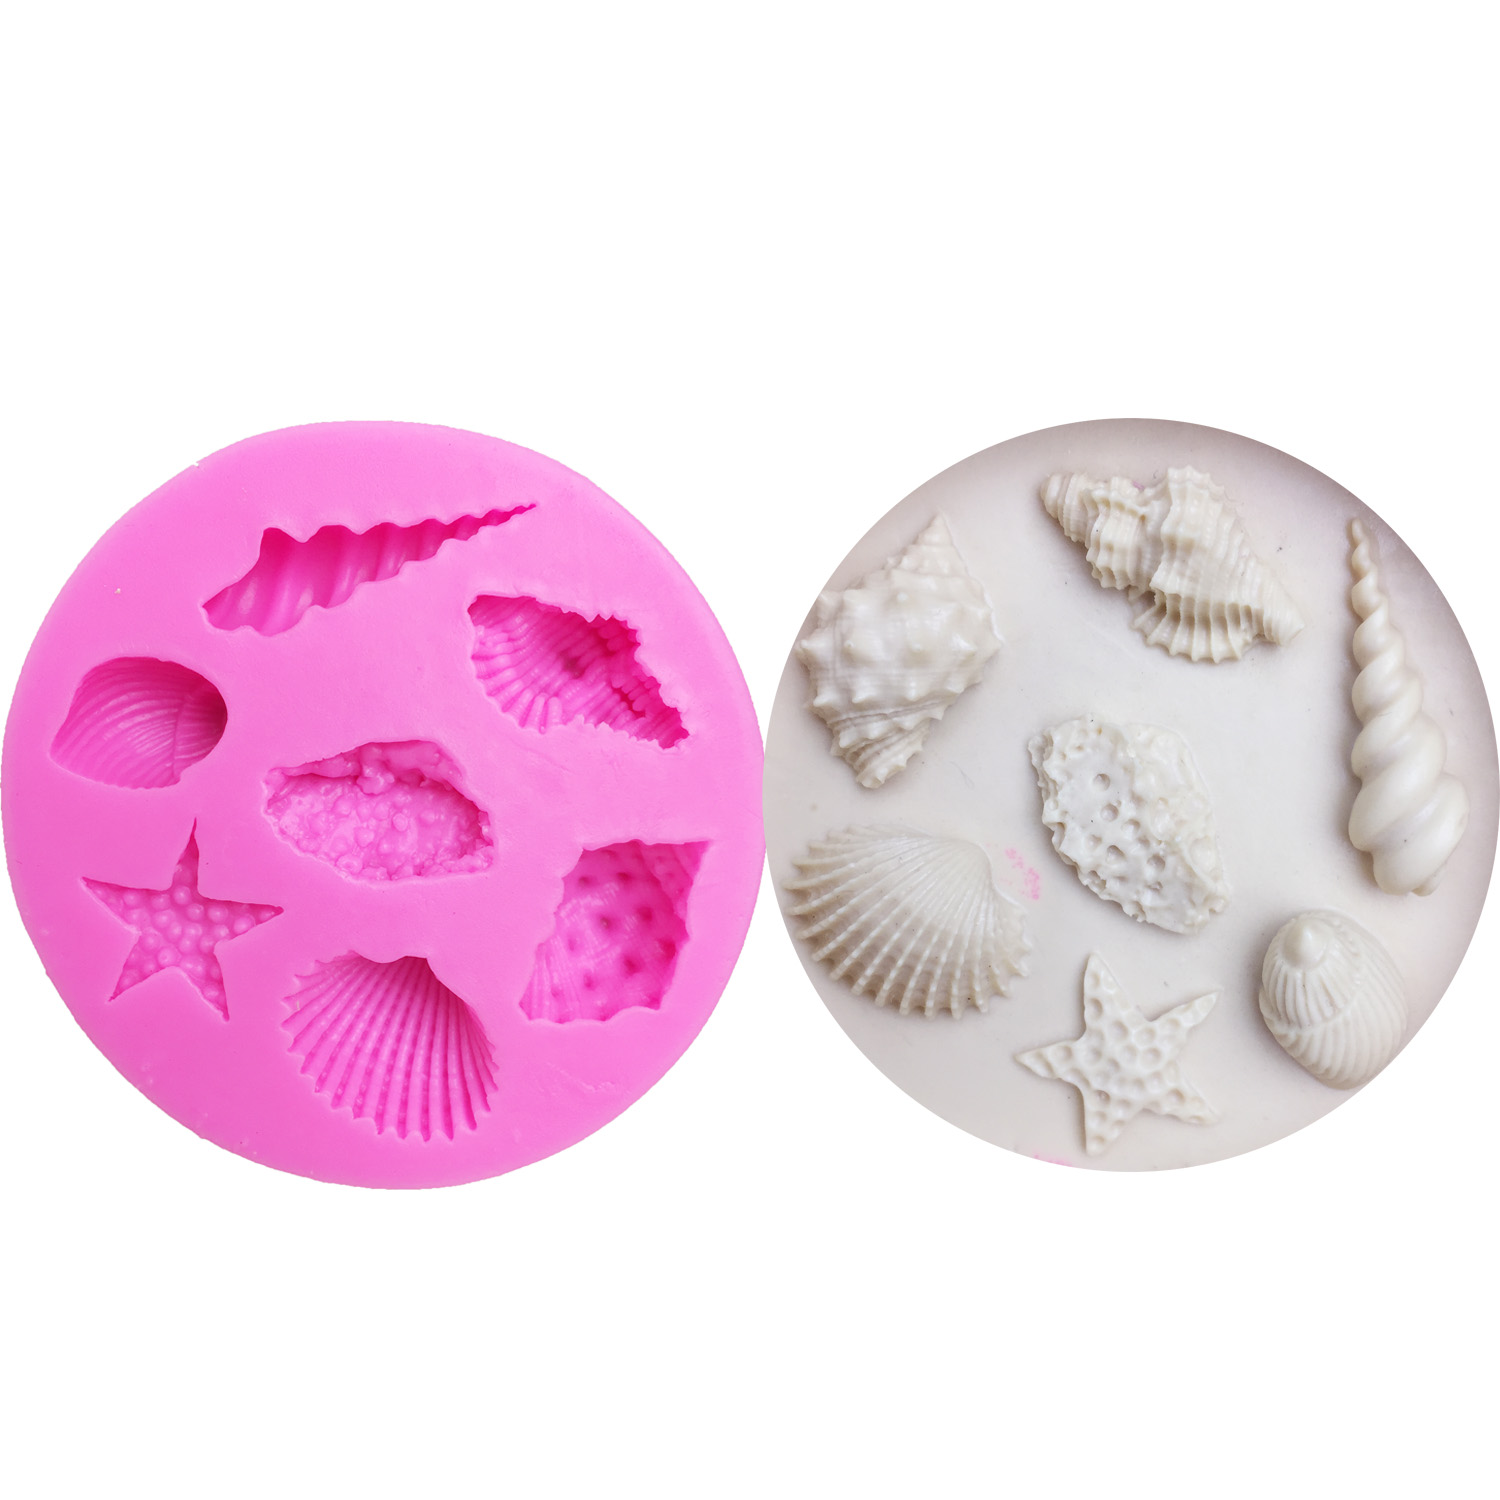 M0122 Marine Series Conch Starfish Shells Shellfish Silicone Mold Felly Cake Baking Candle Soap